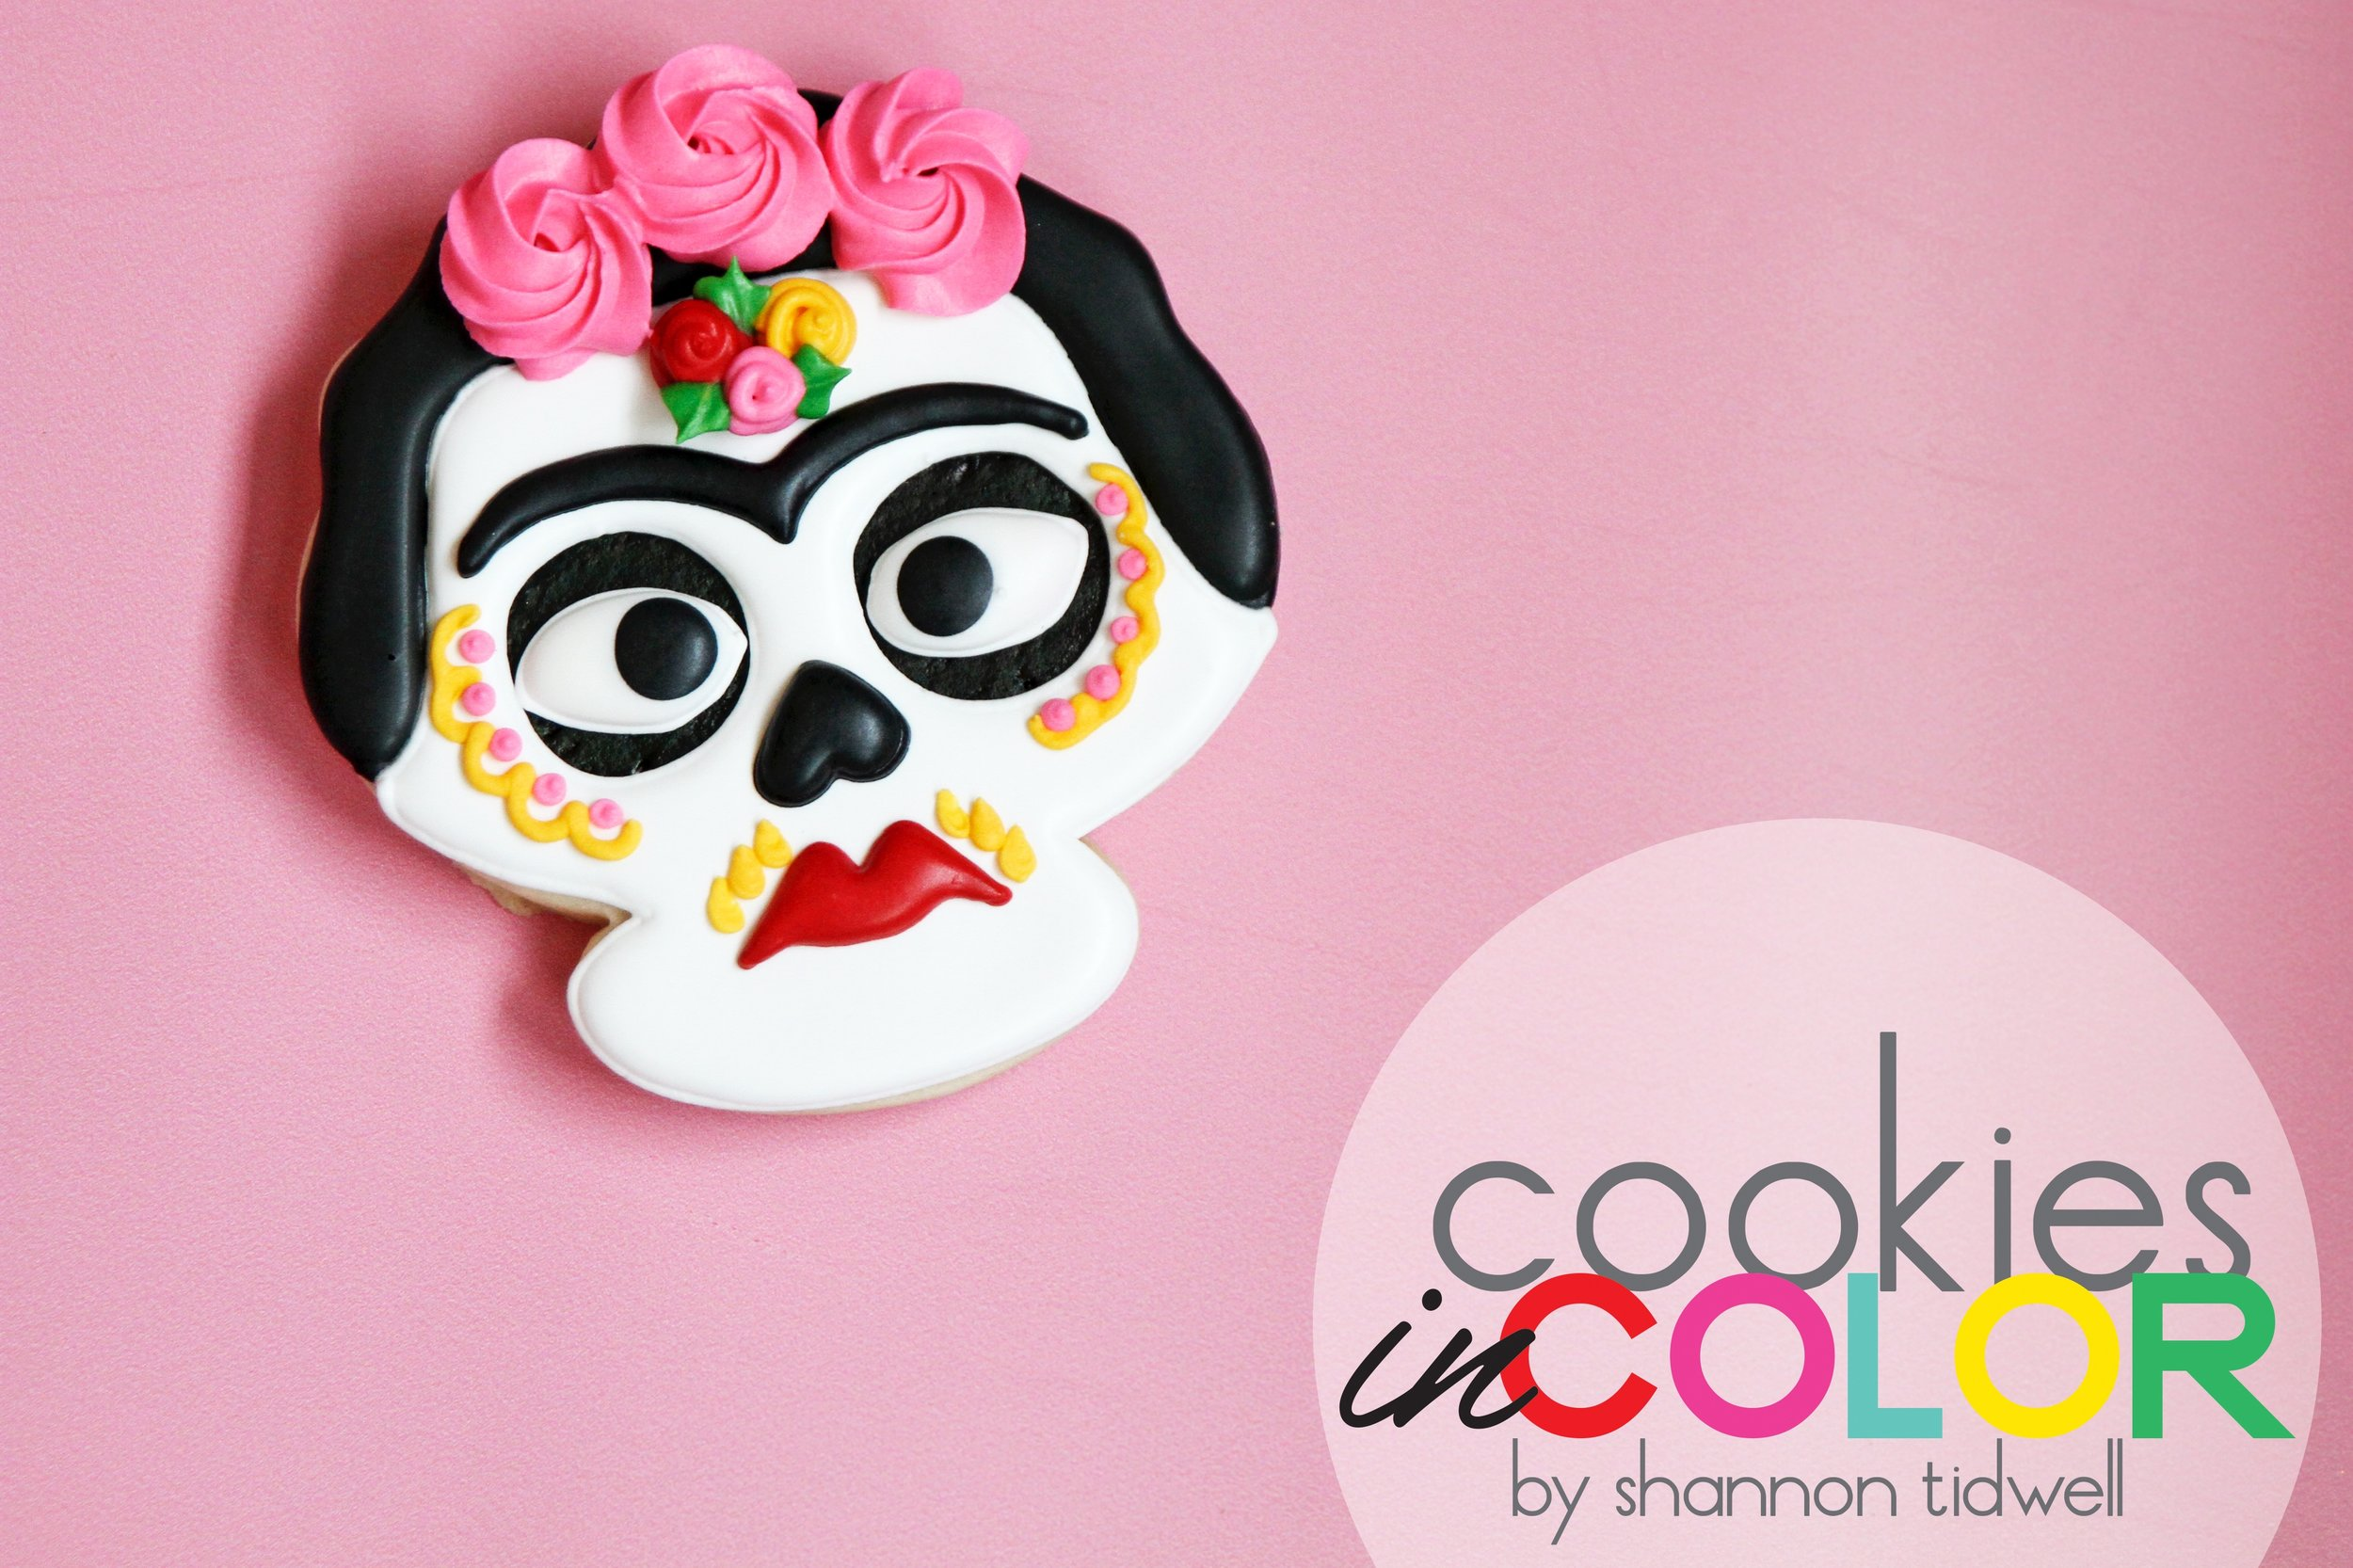 shannontidwell-cookiesincolor-COCO 299.jpg